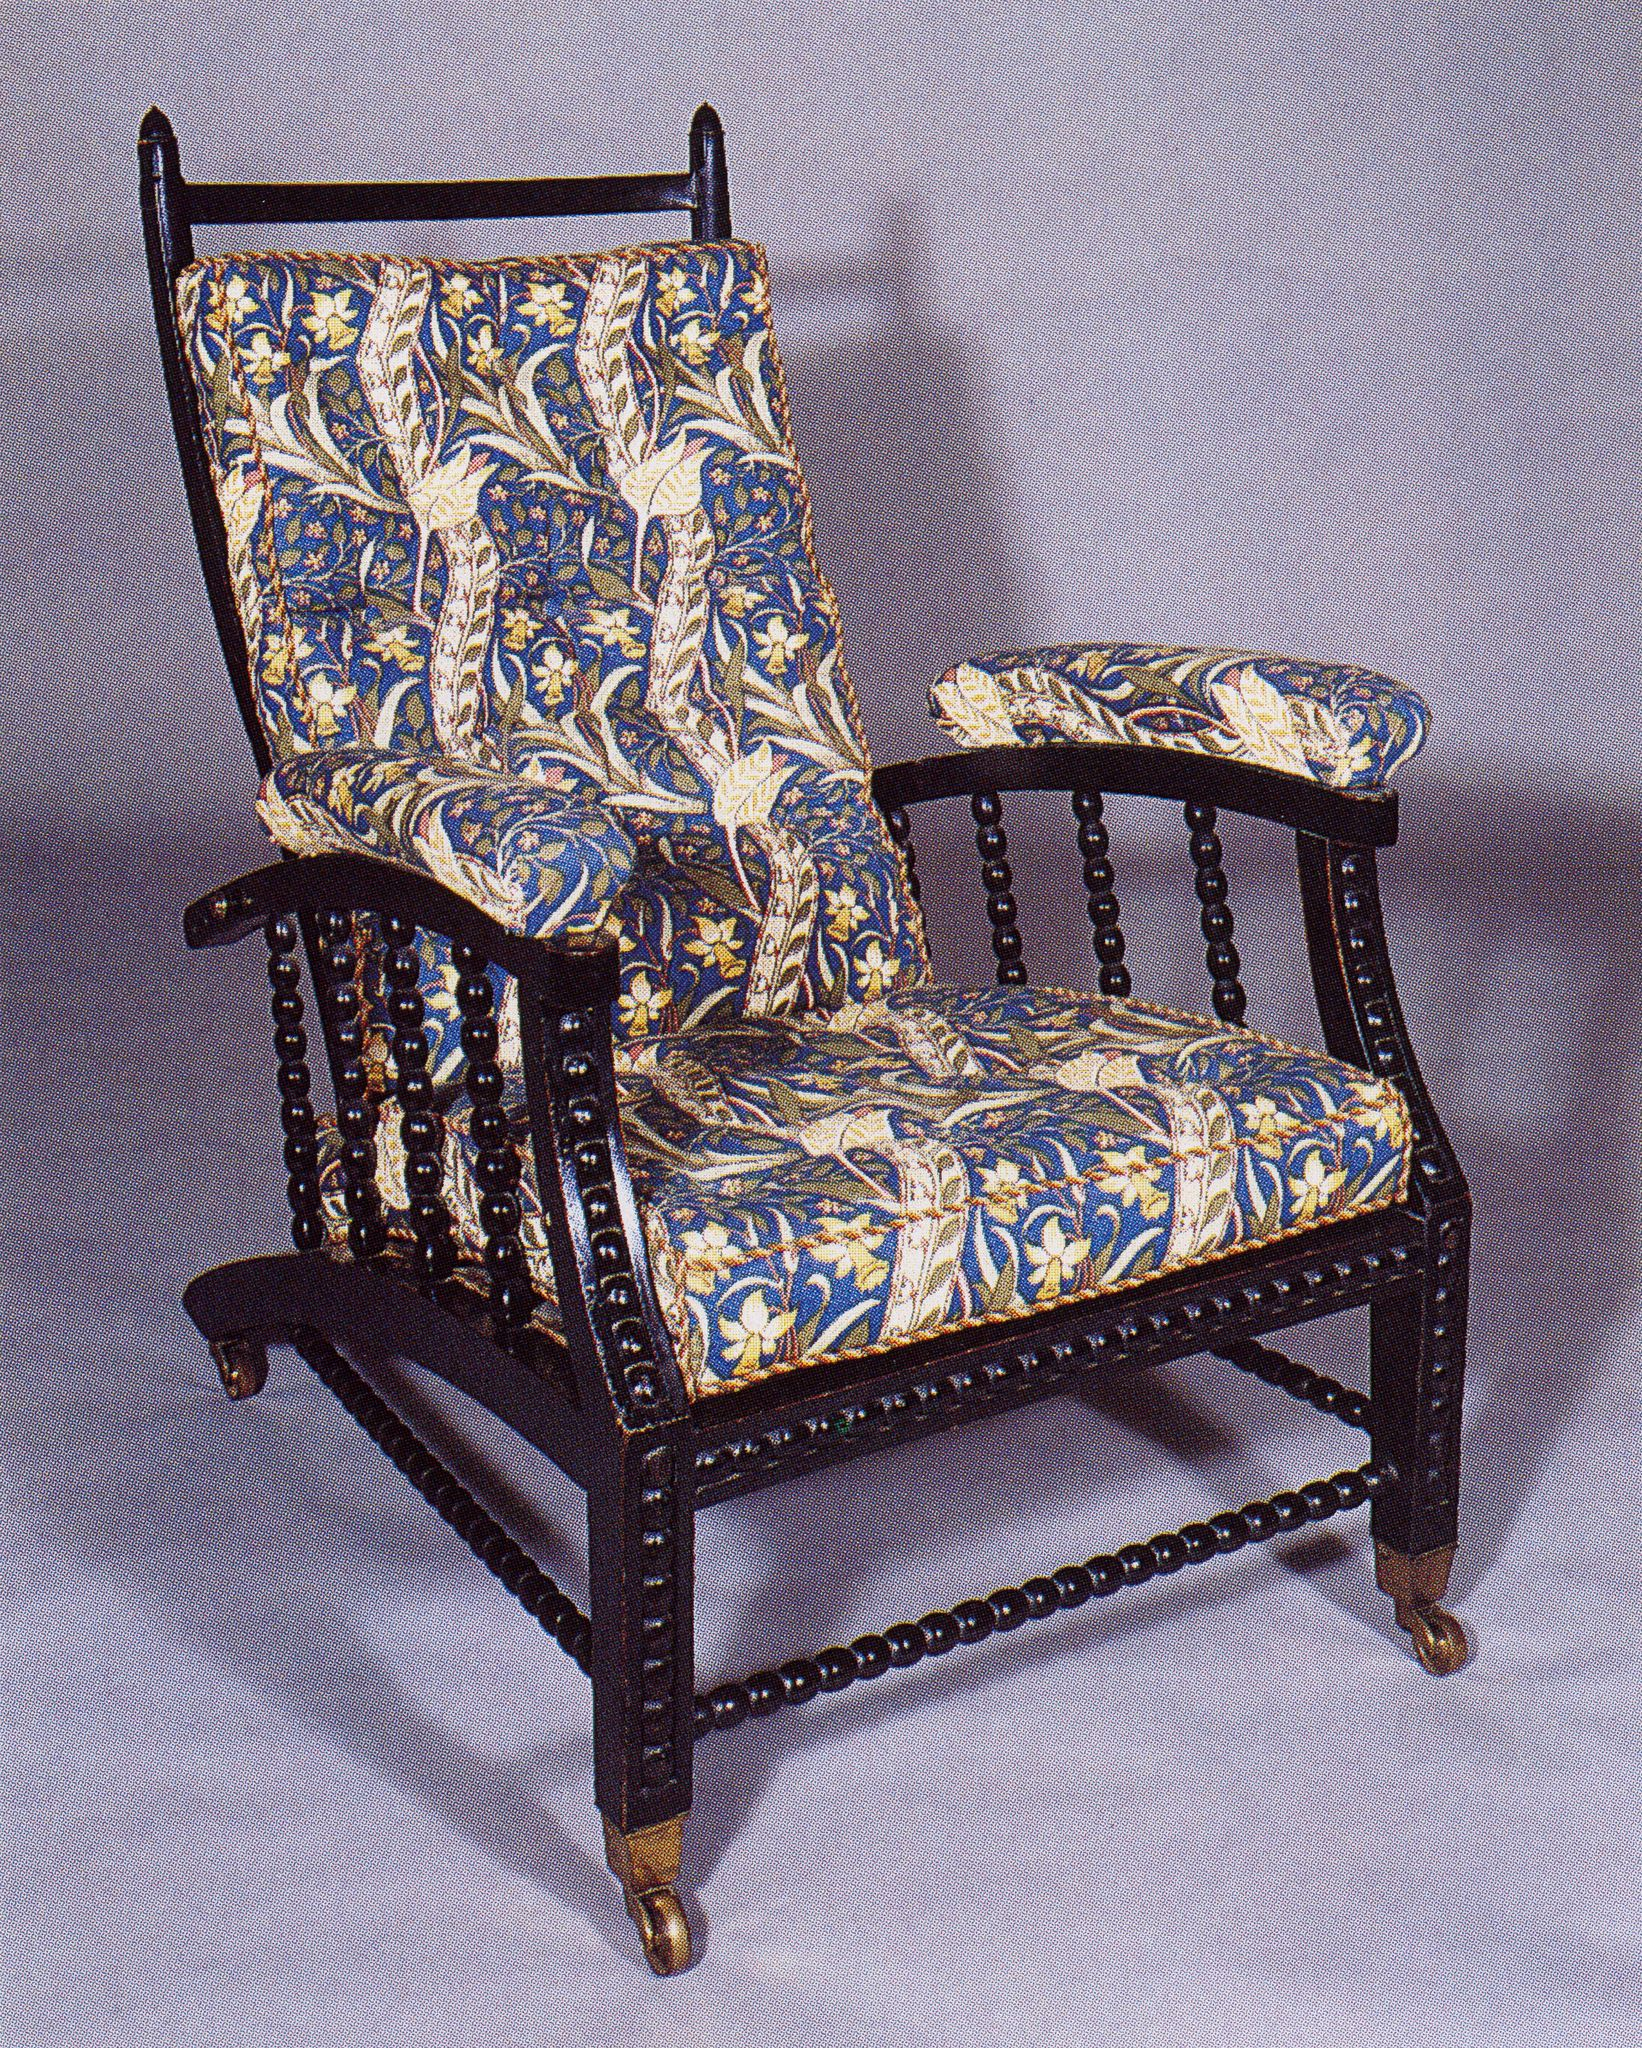 Sofa Upholstery West Sussex Morris Chair By William Morris Co In Blue Upholstery B W